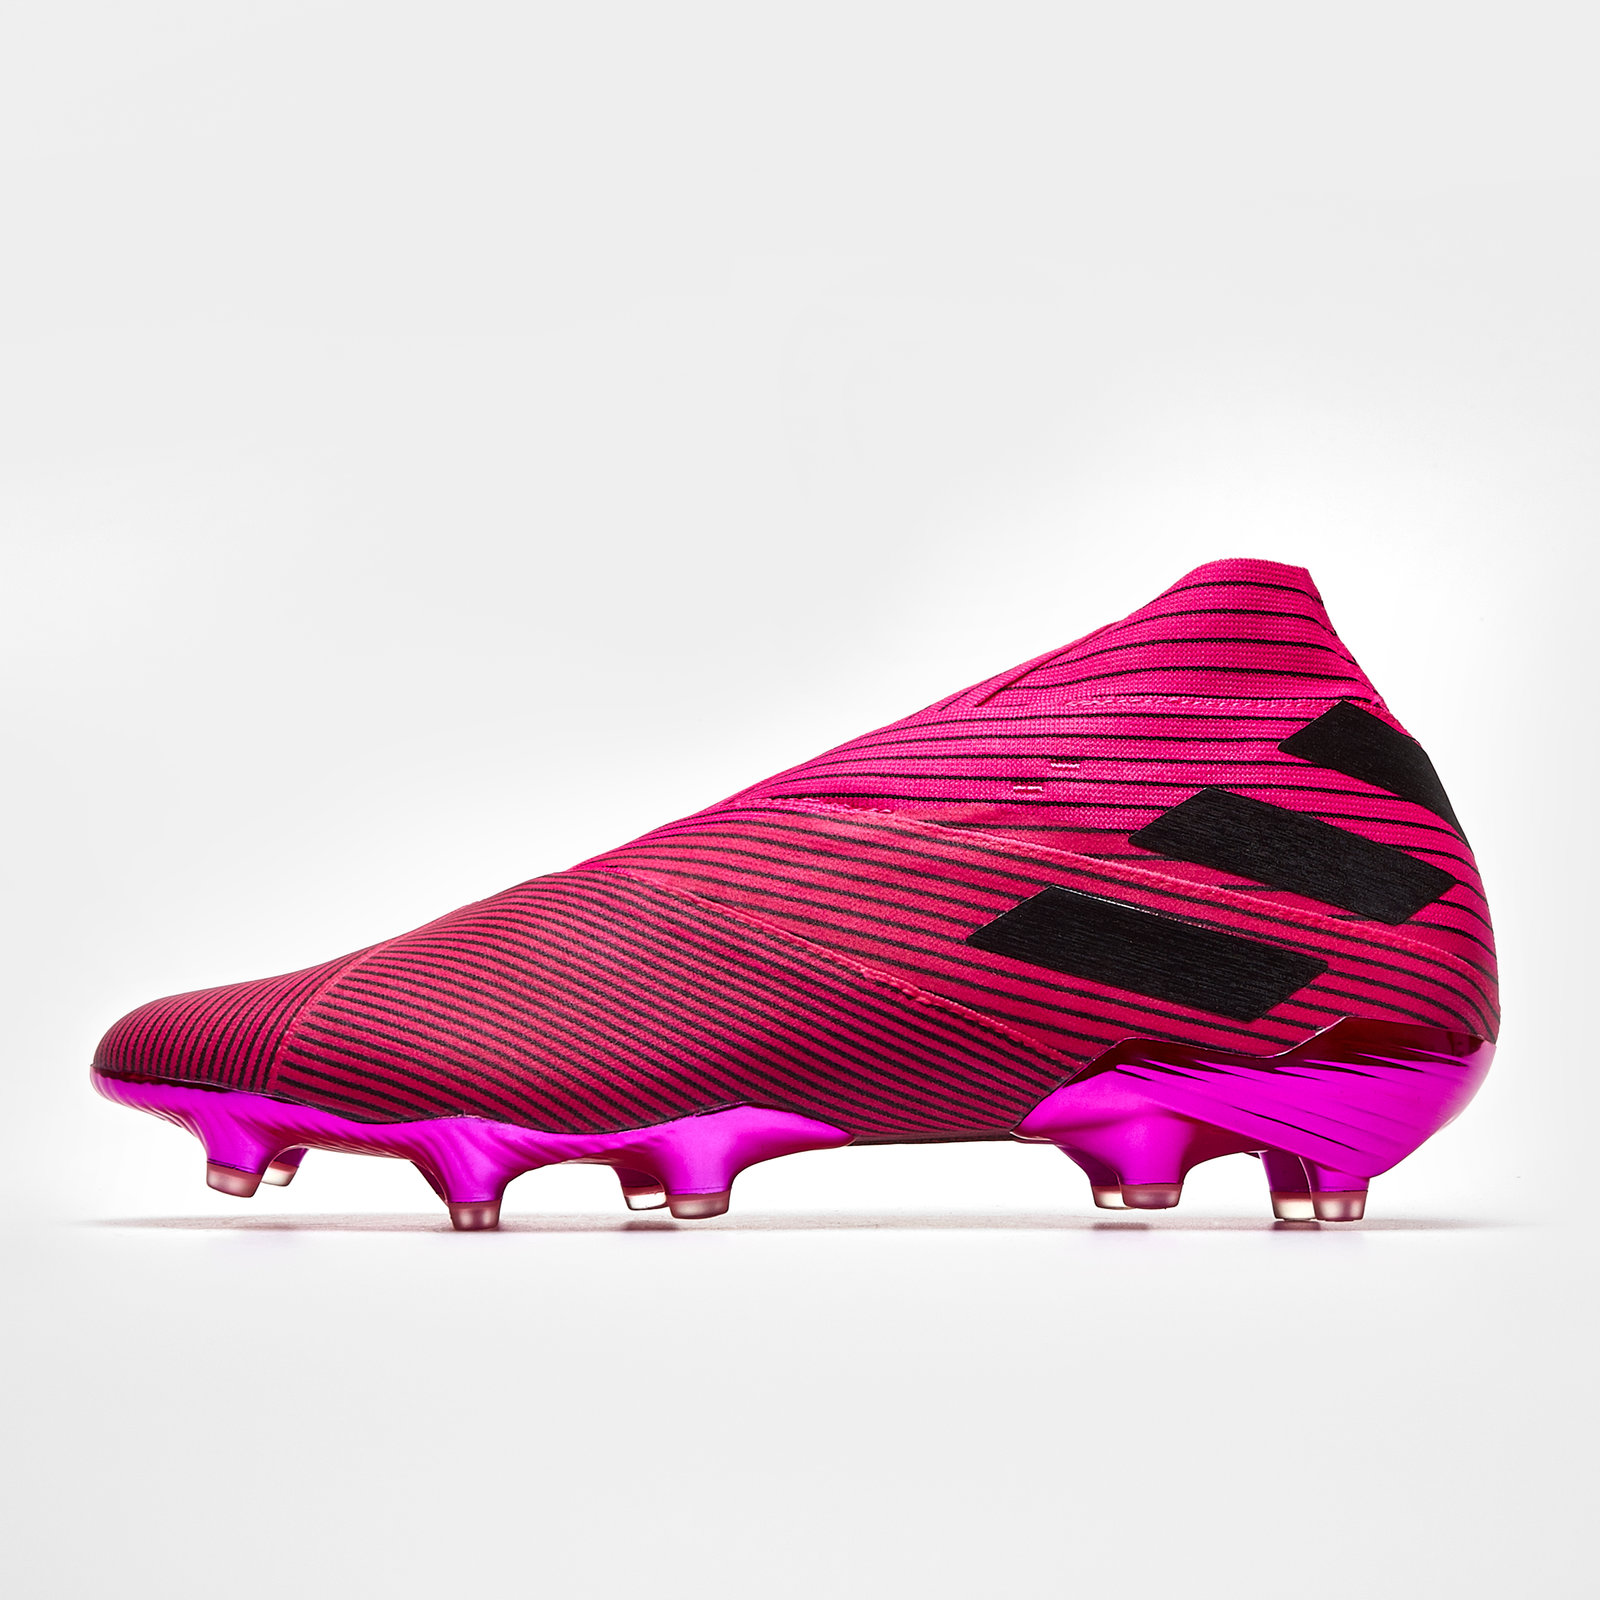 Nemeziz 19+ FG Football Boots